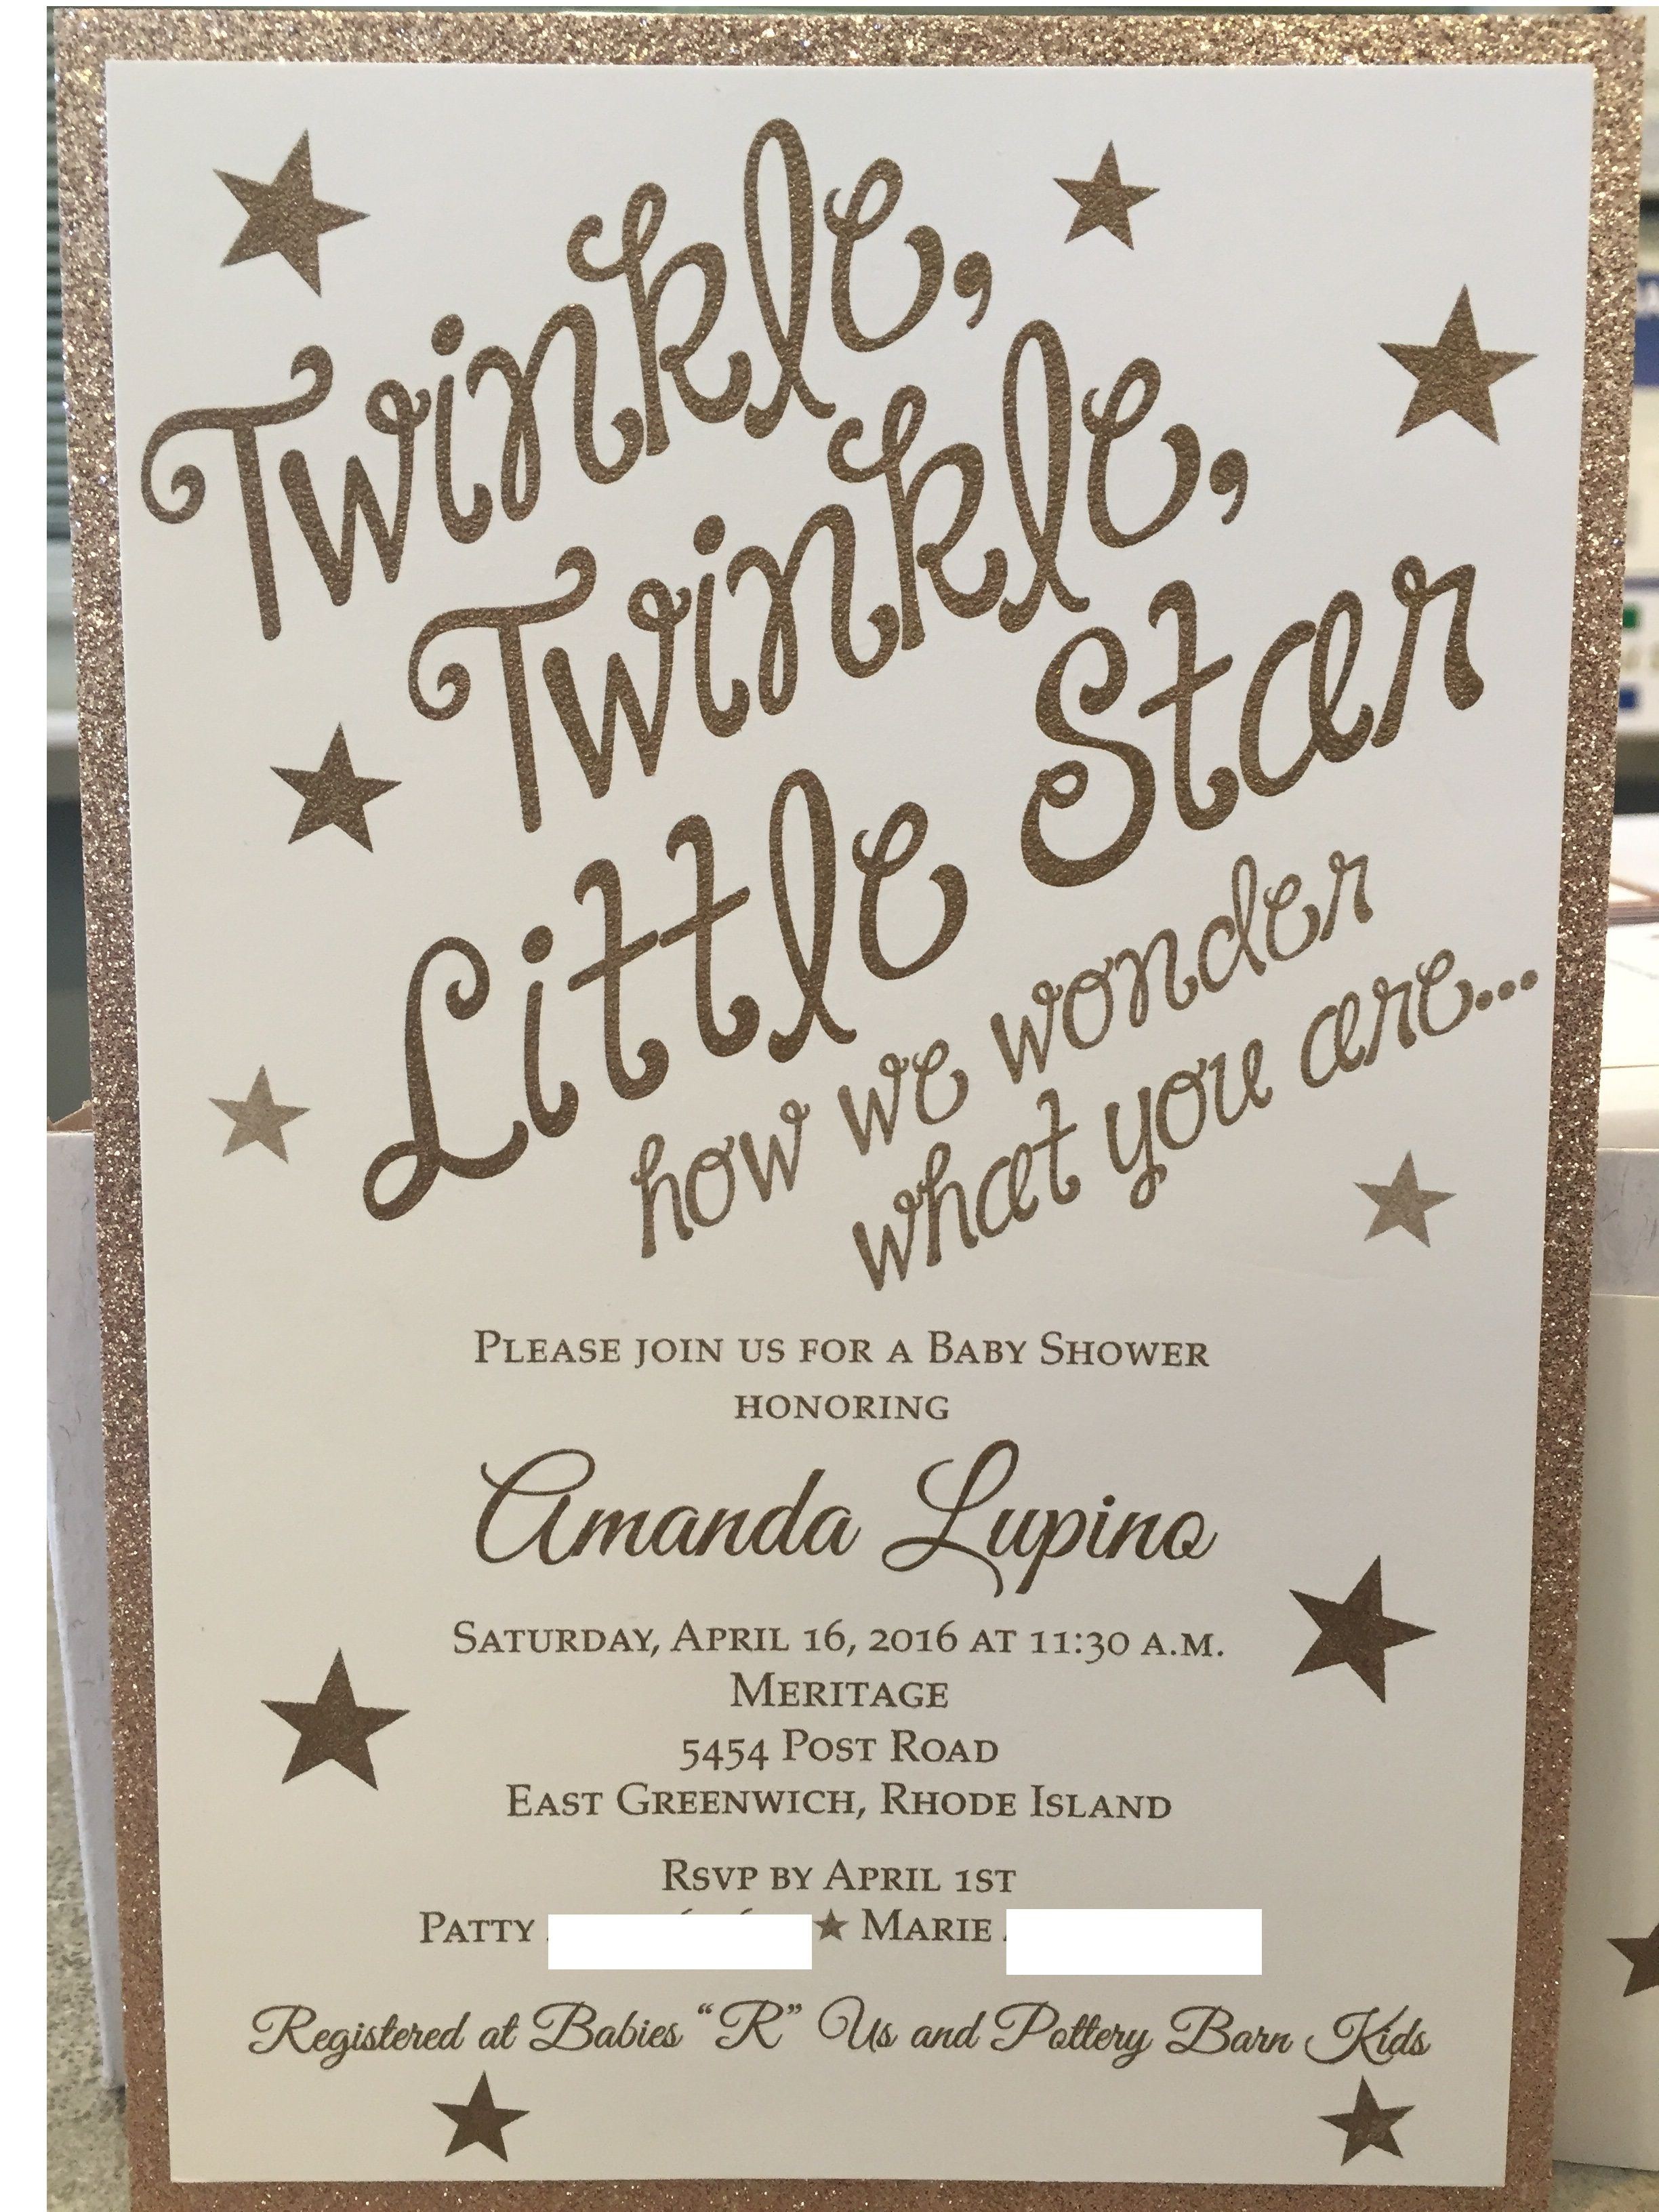 Twinkle, Twinkle, Little Star how we wonder what you are ...